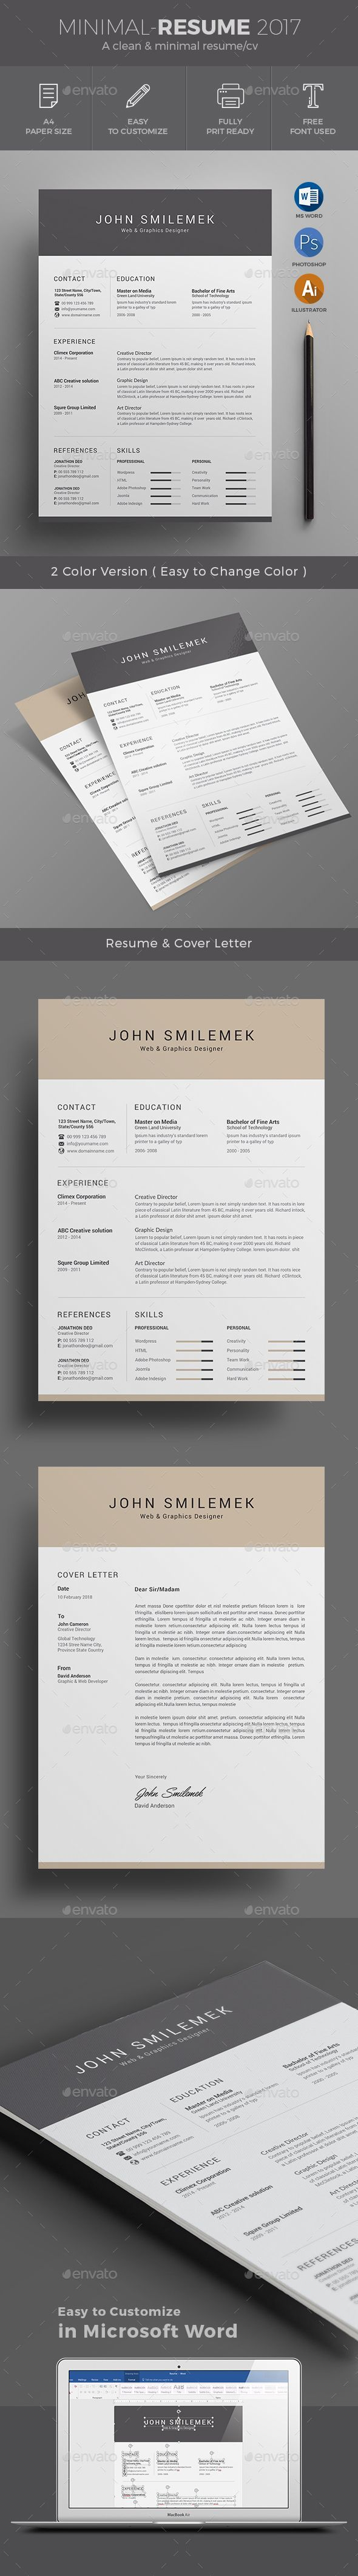 Resume Resumes Stationery ResumeCV Word